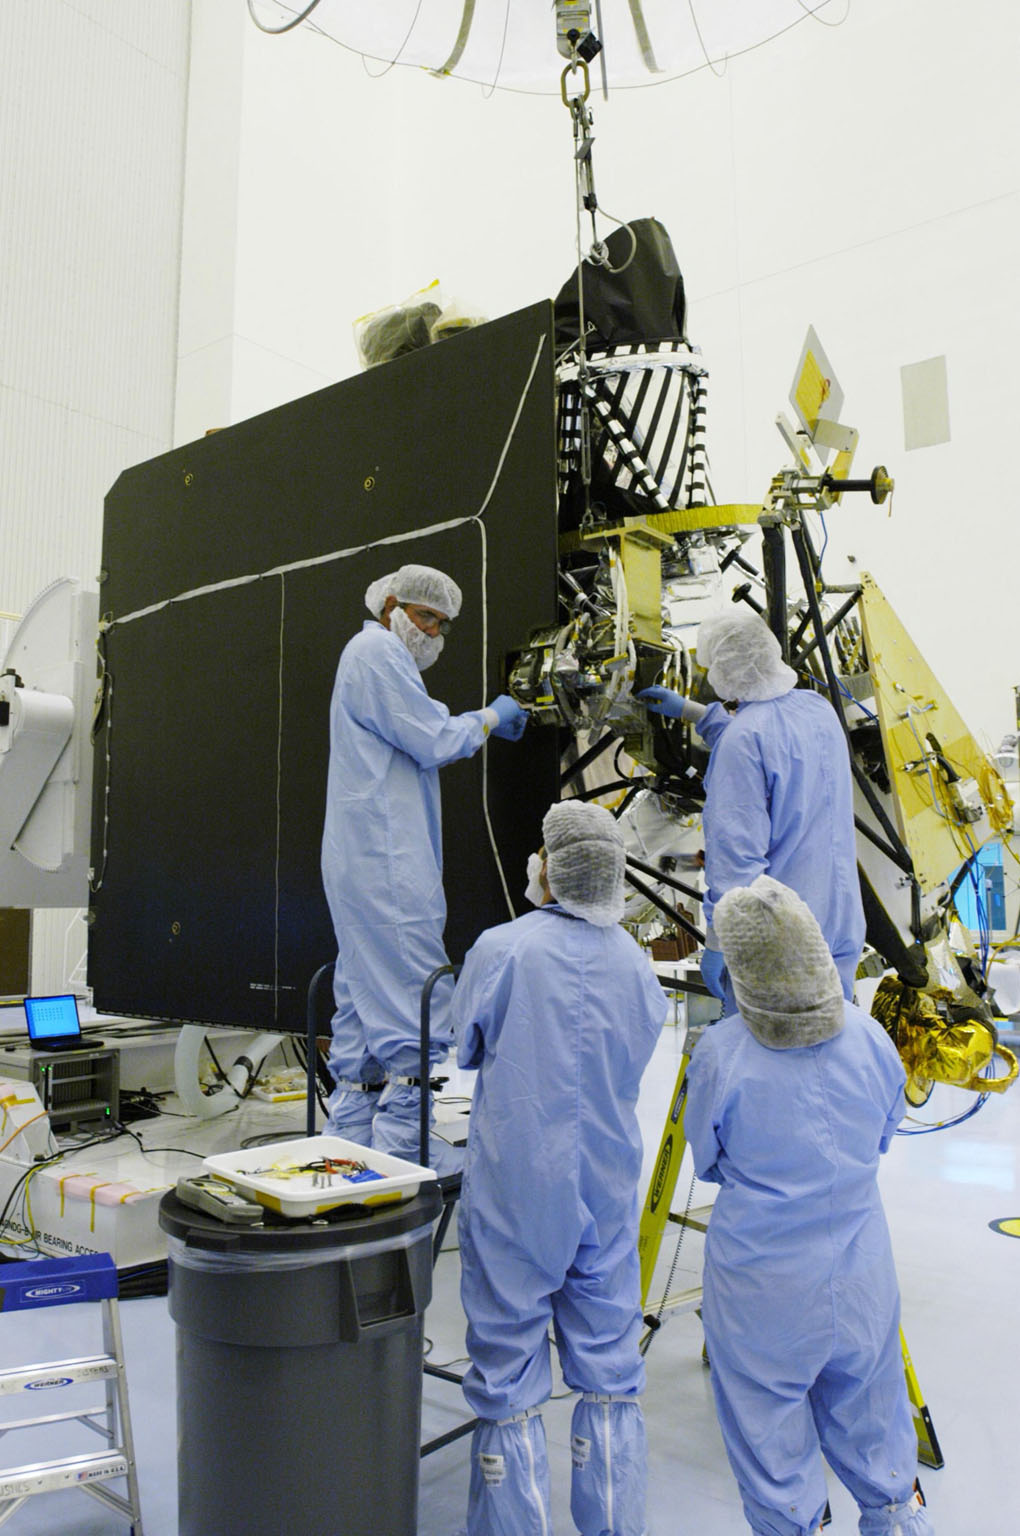 KENNEDY SPACE CENTER, FLA. - In the Payload Hazardous Servicing Facility at NASA?s Kennedy Space Center, engineers finish installing the gimbal on the Mars Reconnaissance Orbiter (MRO) solar panel. A gimbal is an appliance that allows an object to remain horizontal even as its support tips. In the PHSF, the spacecraft will undergo multiple mechanical assembly operations and electrical tests to verify its readiness for launch. A major deployment test will check out the spacecraft?s large solar arrays. The MRO was built by Lockheed Martin for NASA?s Jet Propulsion Laboratory in California. It is the next major step in Mars exploration and scheduled for launch from Cape Canaveral Air Force Station in a window opening Aug. 10. The MRO is an important next step in fulfilling NASA?s vision of space exploration and ultimately sending human explorers to Mars and beyond.